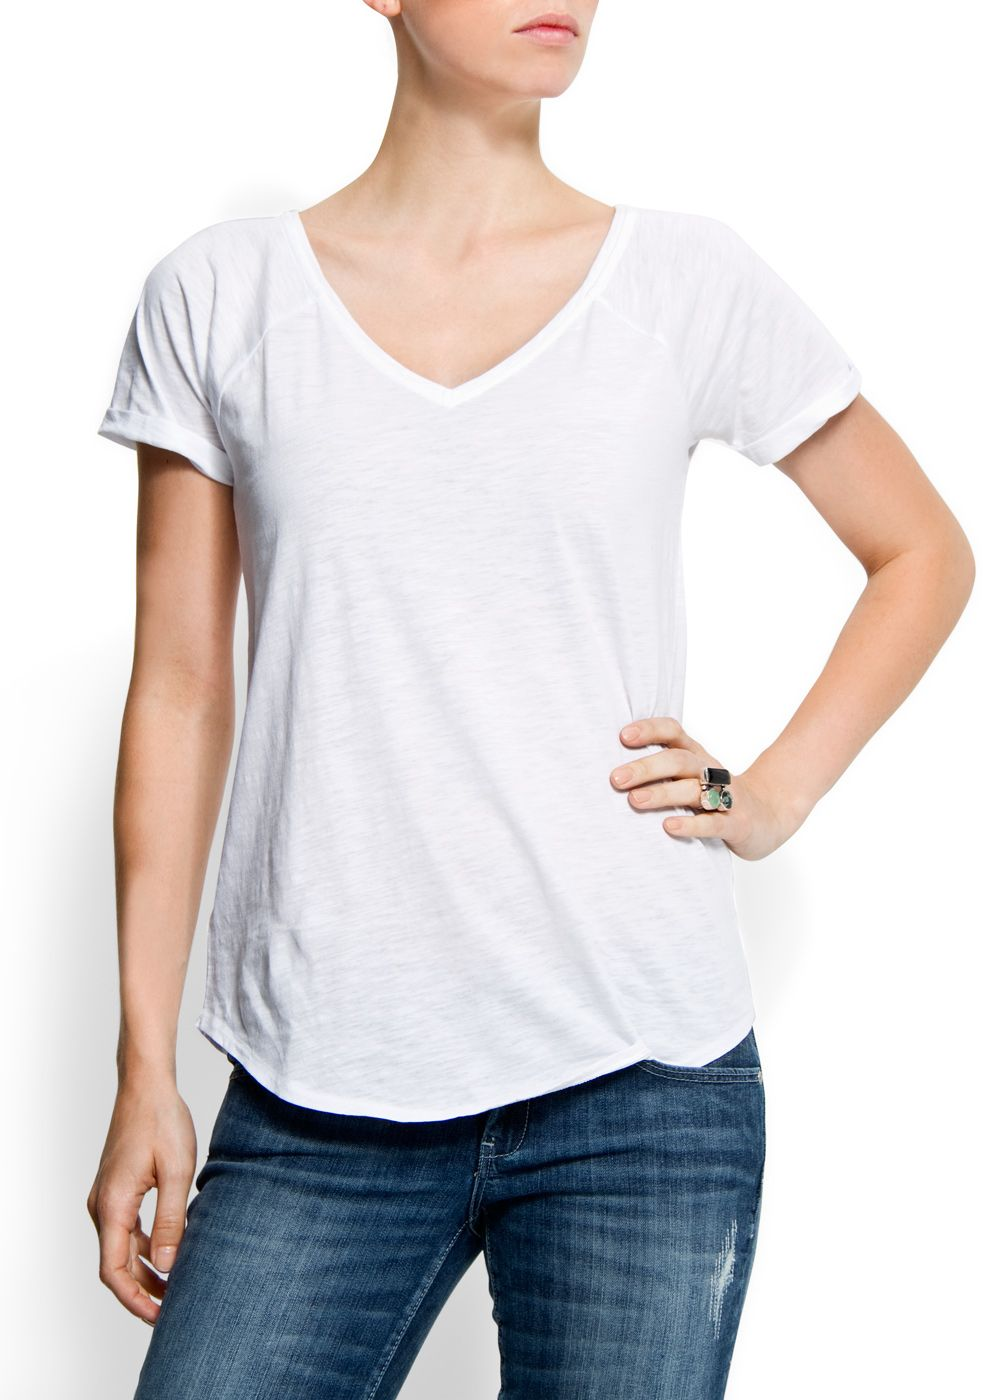 Mango Womens Mango Cotton v-neck t-shirt, White product image